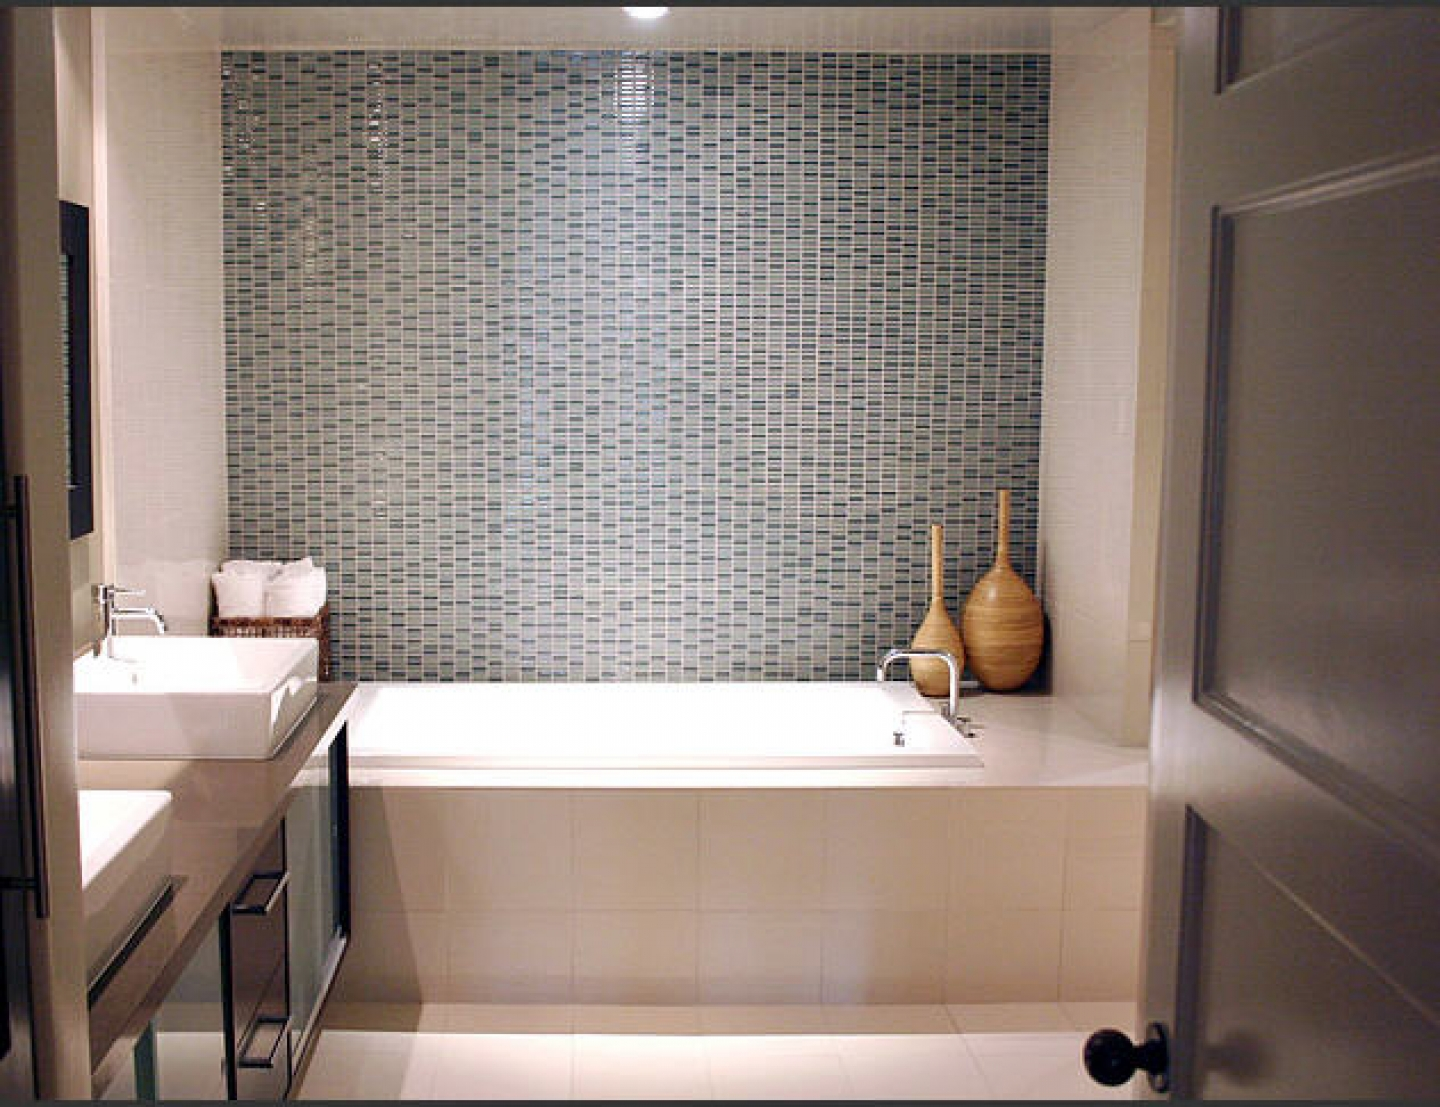 30 magnificent ideas and pictures of 1950s bathroom tiles ... on Small Space Small Bathroom Tiles Design  id=30284